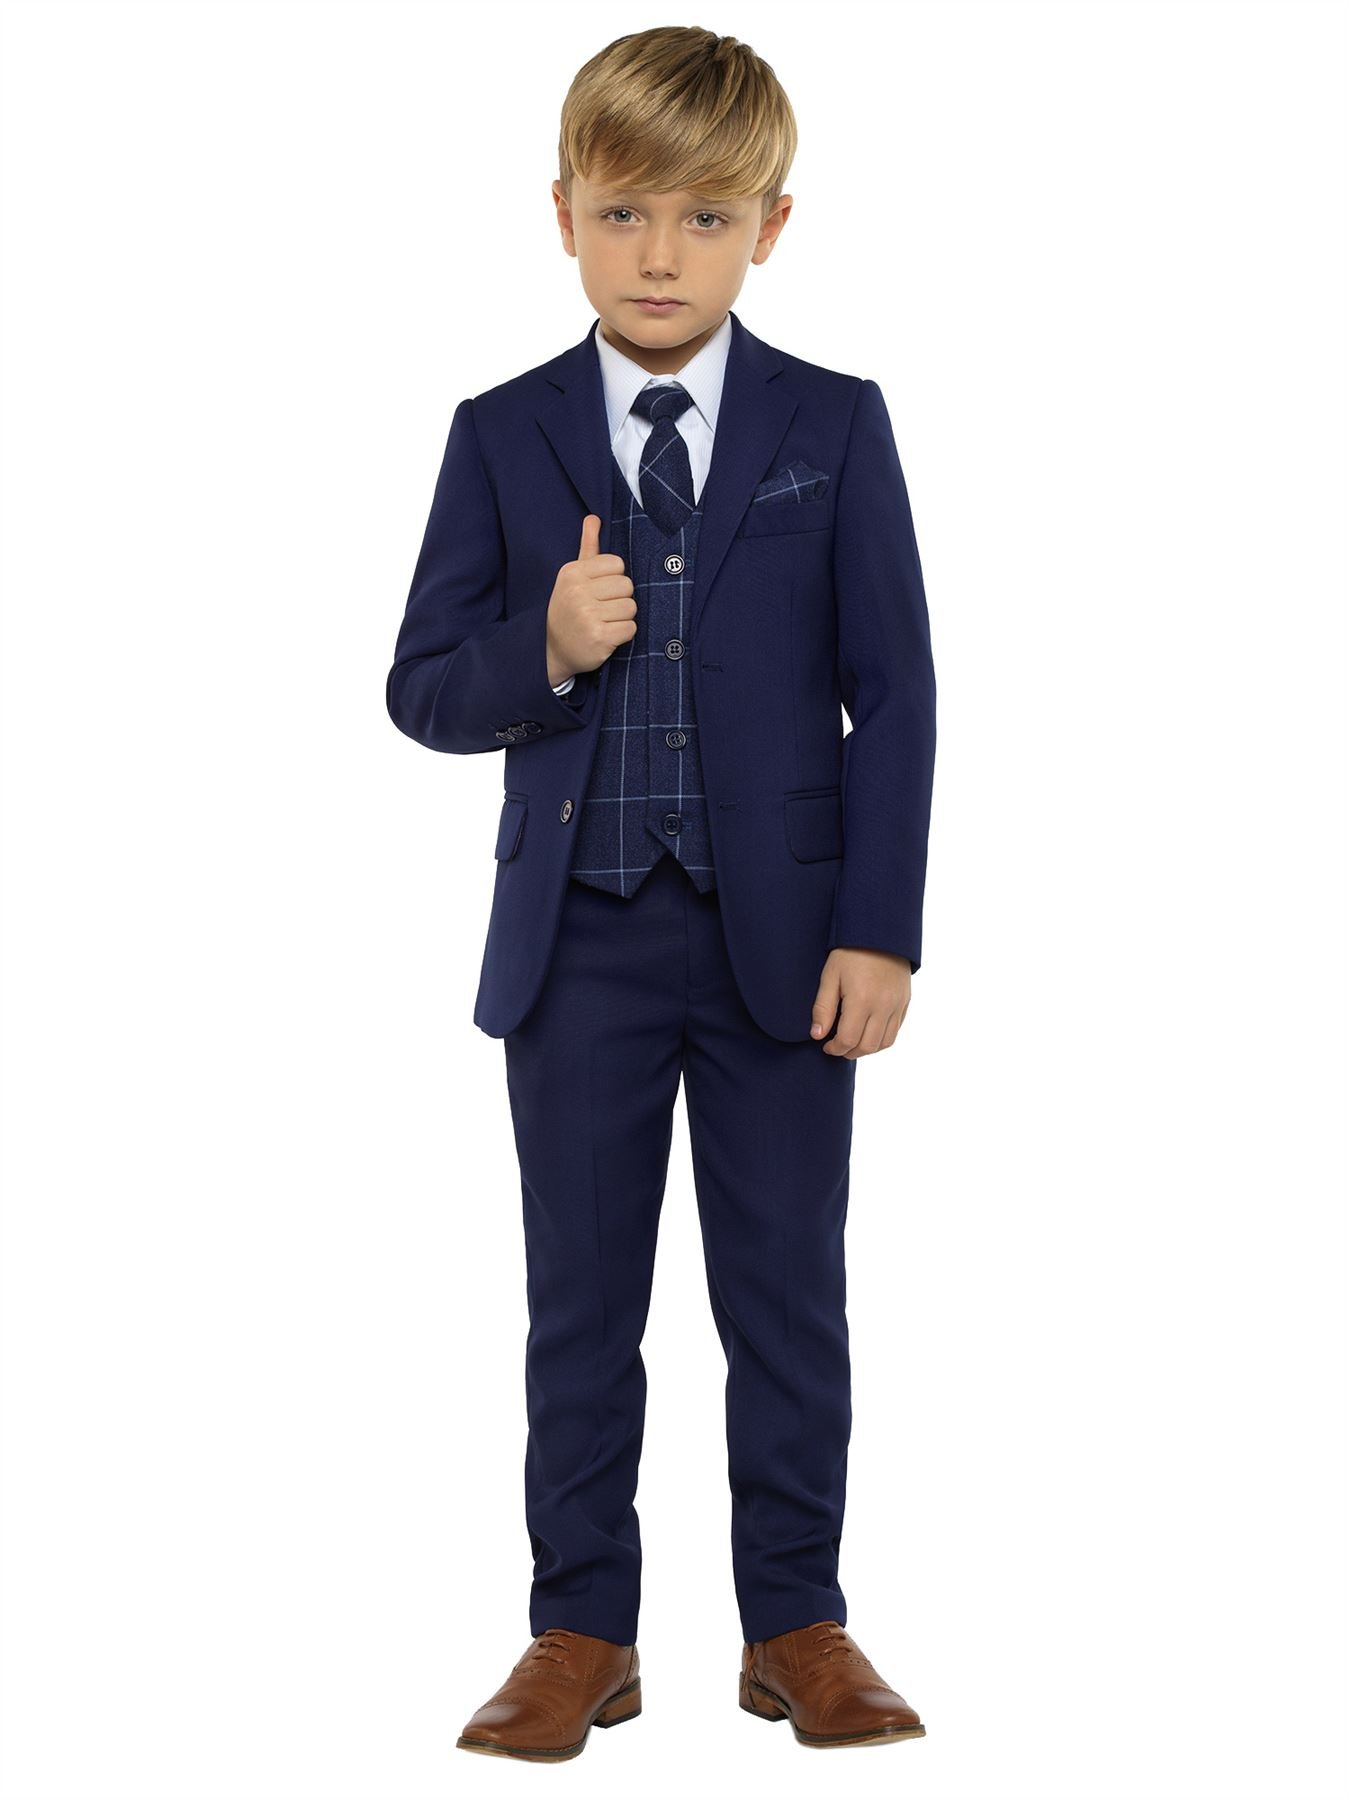 Paisley of London, Kingsman Blue, Boys Slim Fit Ring Bearer Suit with Shirt and Oliver Navy Vest, 10